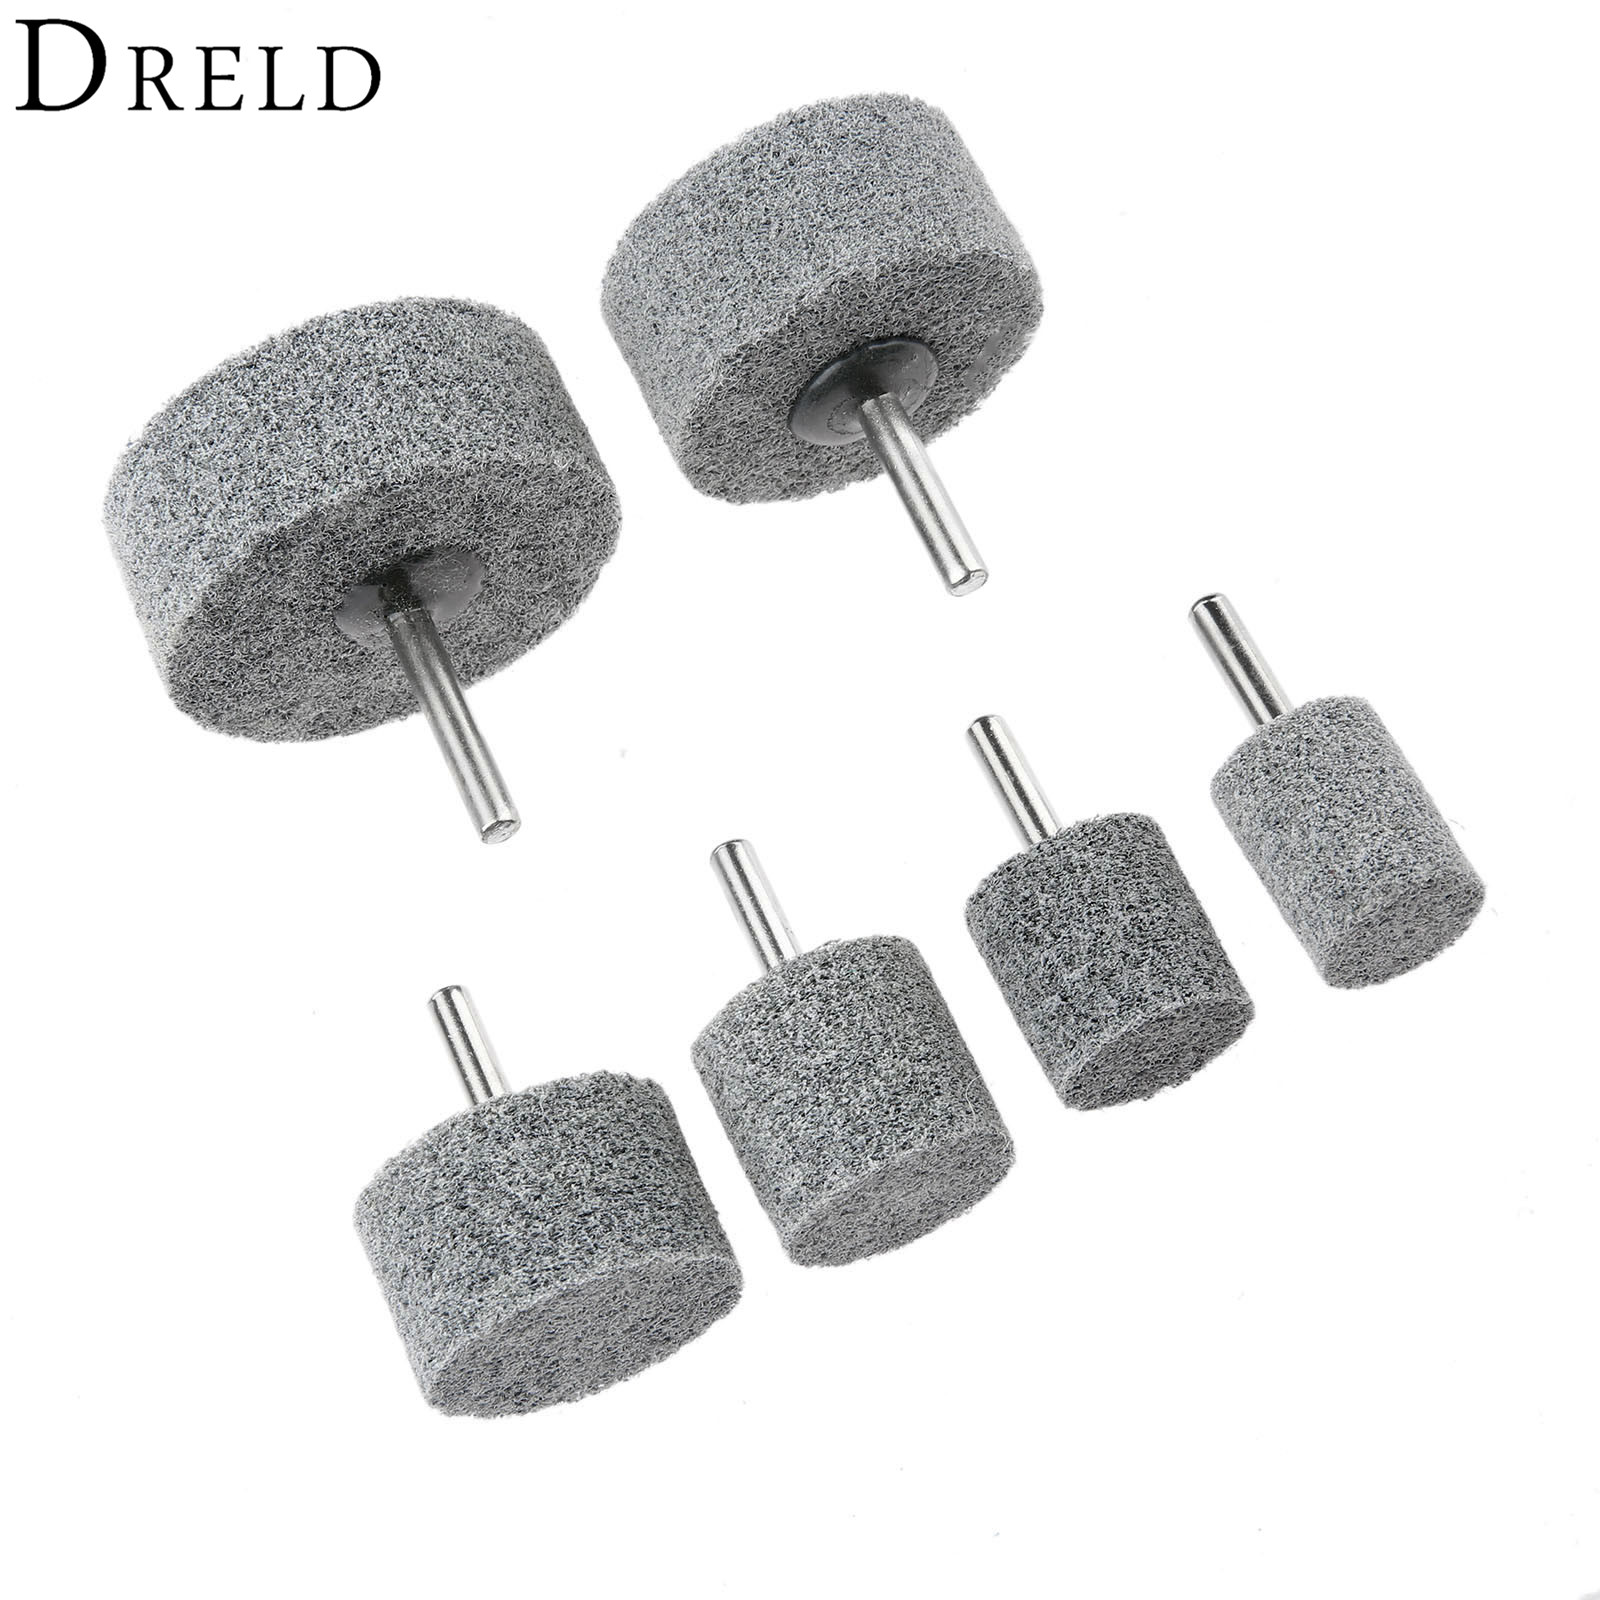 DRELD 6mm Shank Fiber Nylon Mounted Point Grinding Head For Buffing Polishing Grinder Rotary Tools 20mm-60mm Dremel Accessories